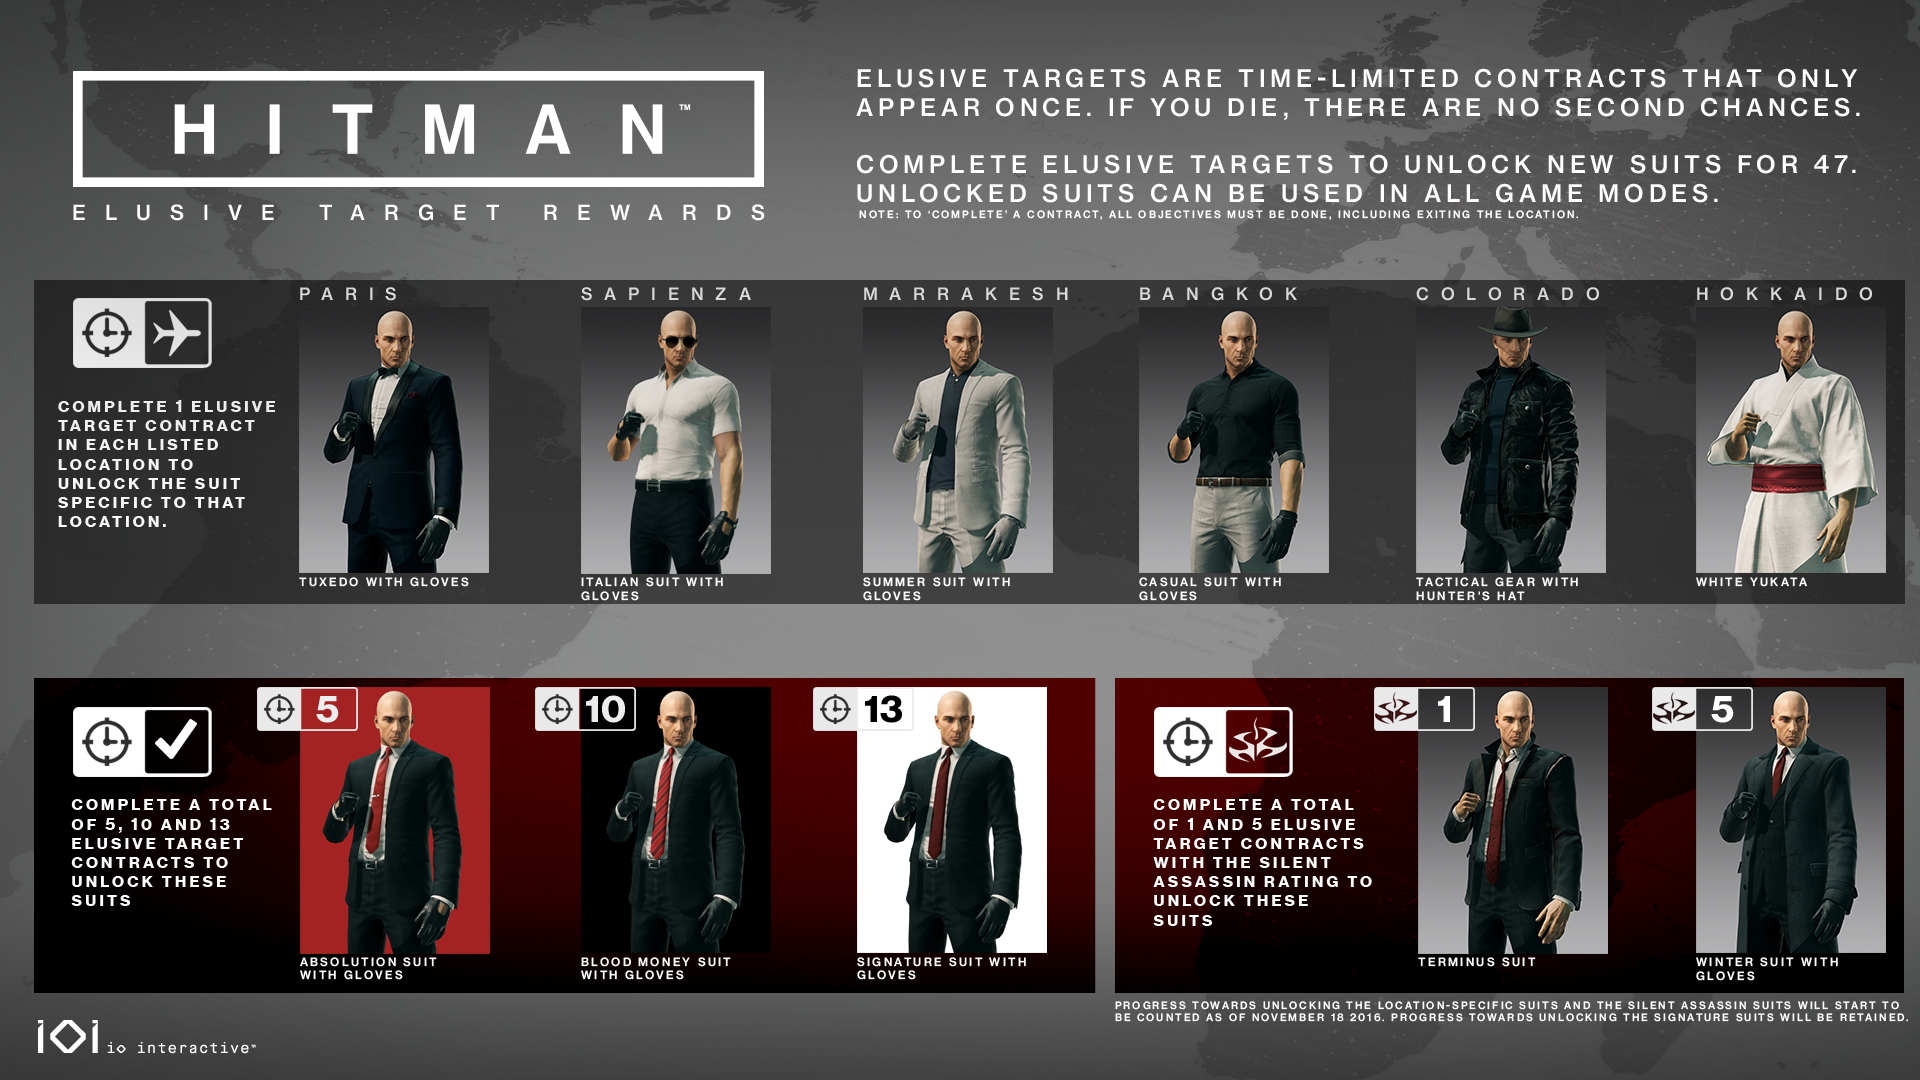 hitman_artwork_et_updated_rewards_16_1481891627-12-2016